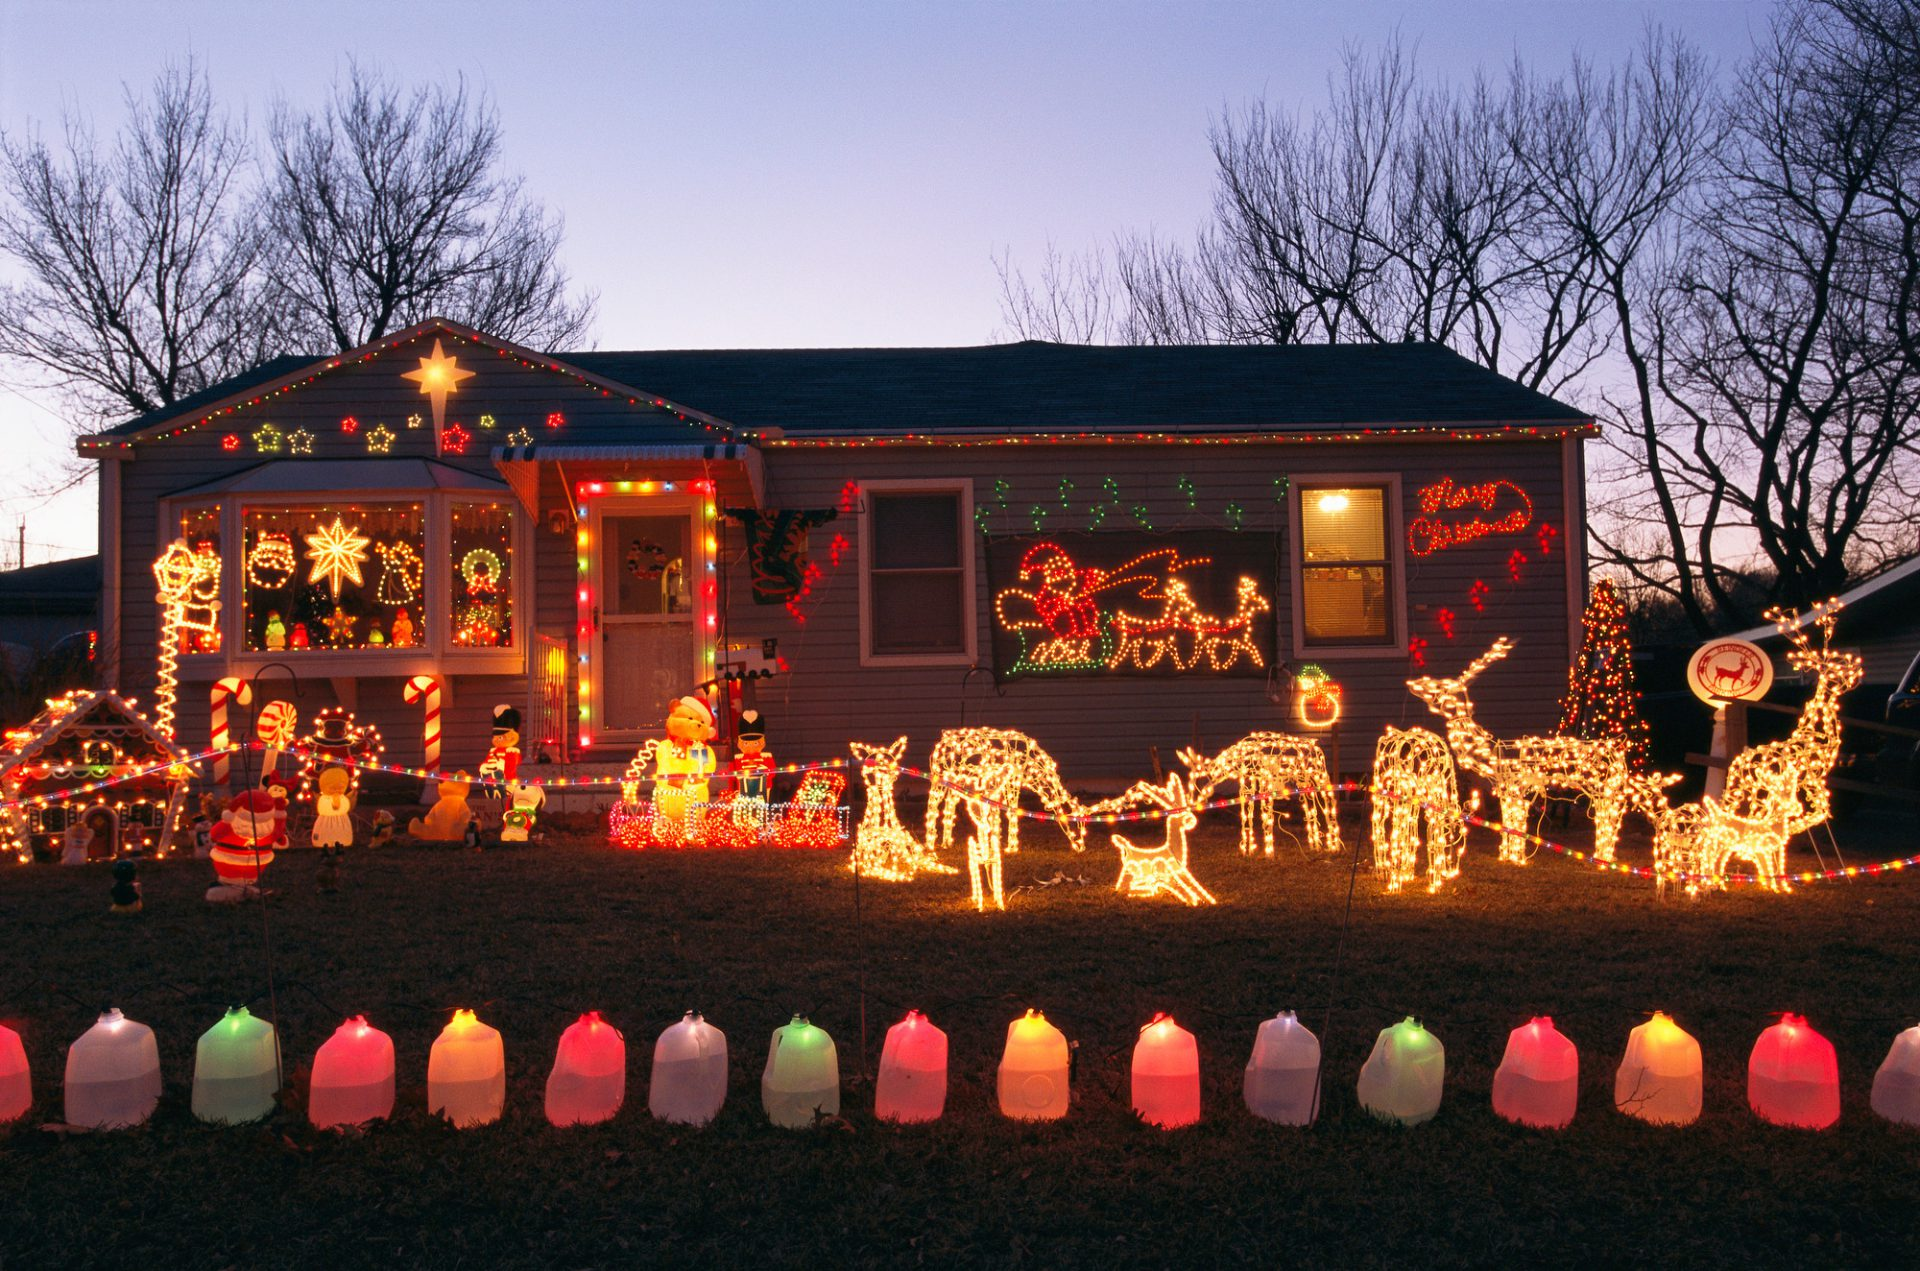 Photo: A house and front yard with brightly colored Christmas decorations.